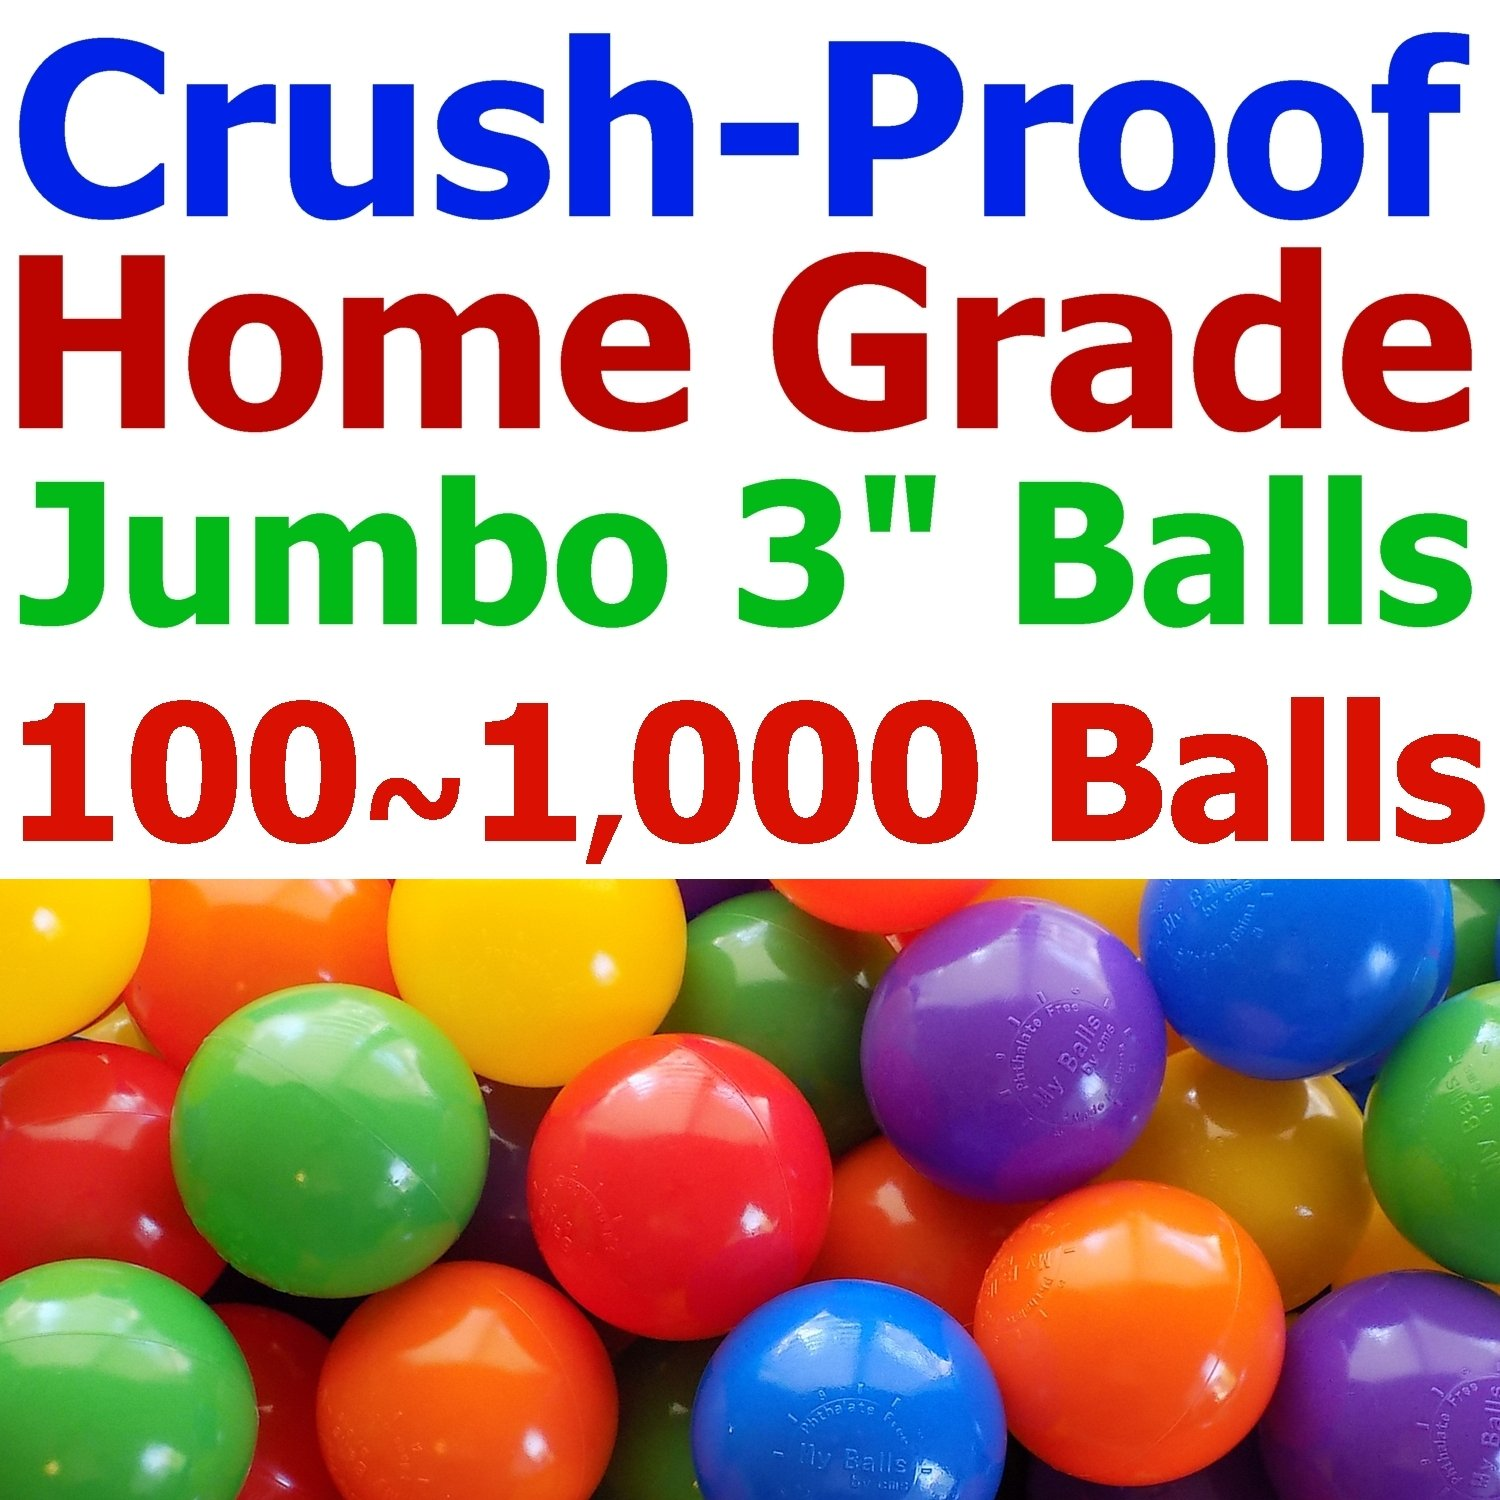 My Balls Pack of 600 Jumbo 3'' Crush-Proof Ball Pit Balls - 5 Bright Colors, Phthalate Free, BPA Free, PVC Free, Non-Toxic, Non-Recycled Plastic (Standard Home Grade, Pack of 600 - Best Value) by My Balls